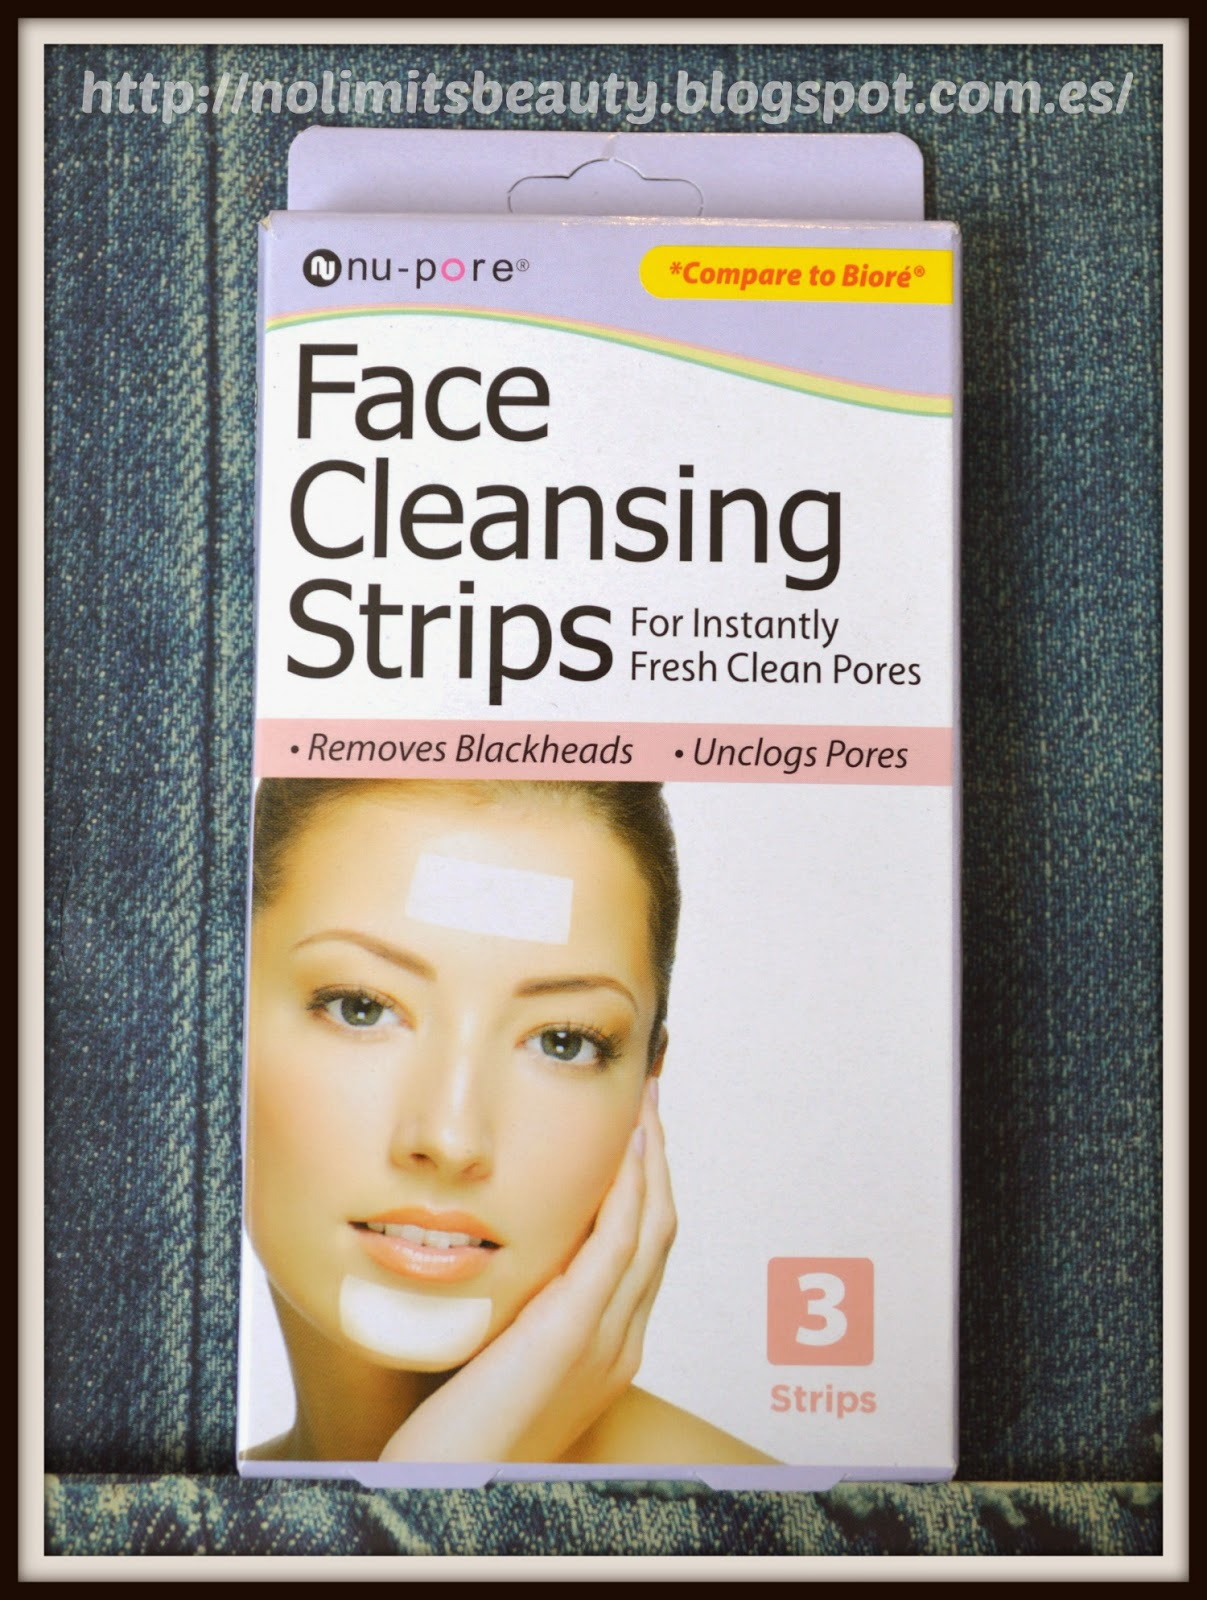 Face Cleansing Strips de Nu-pore